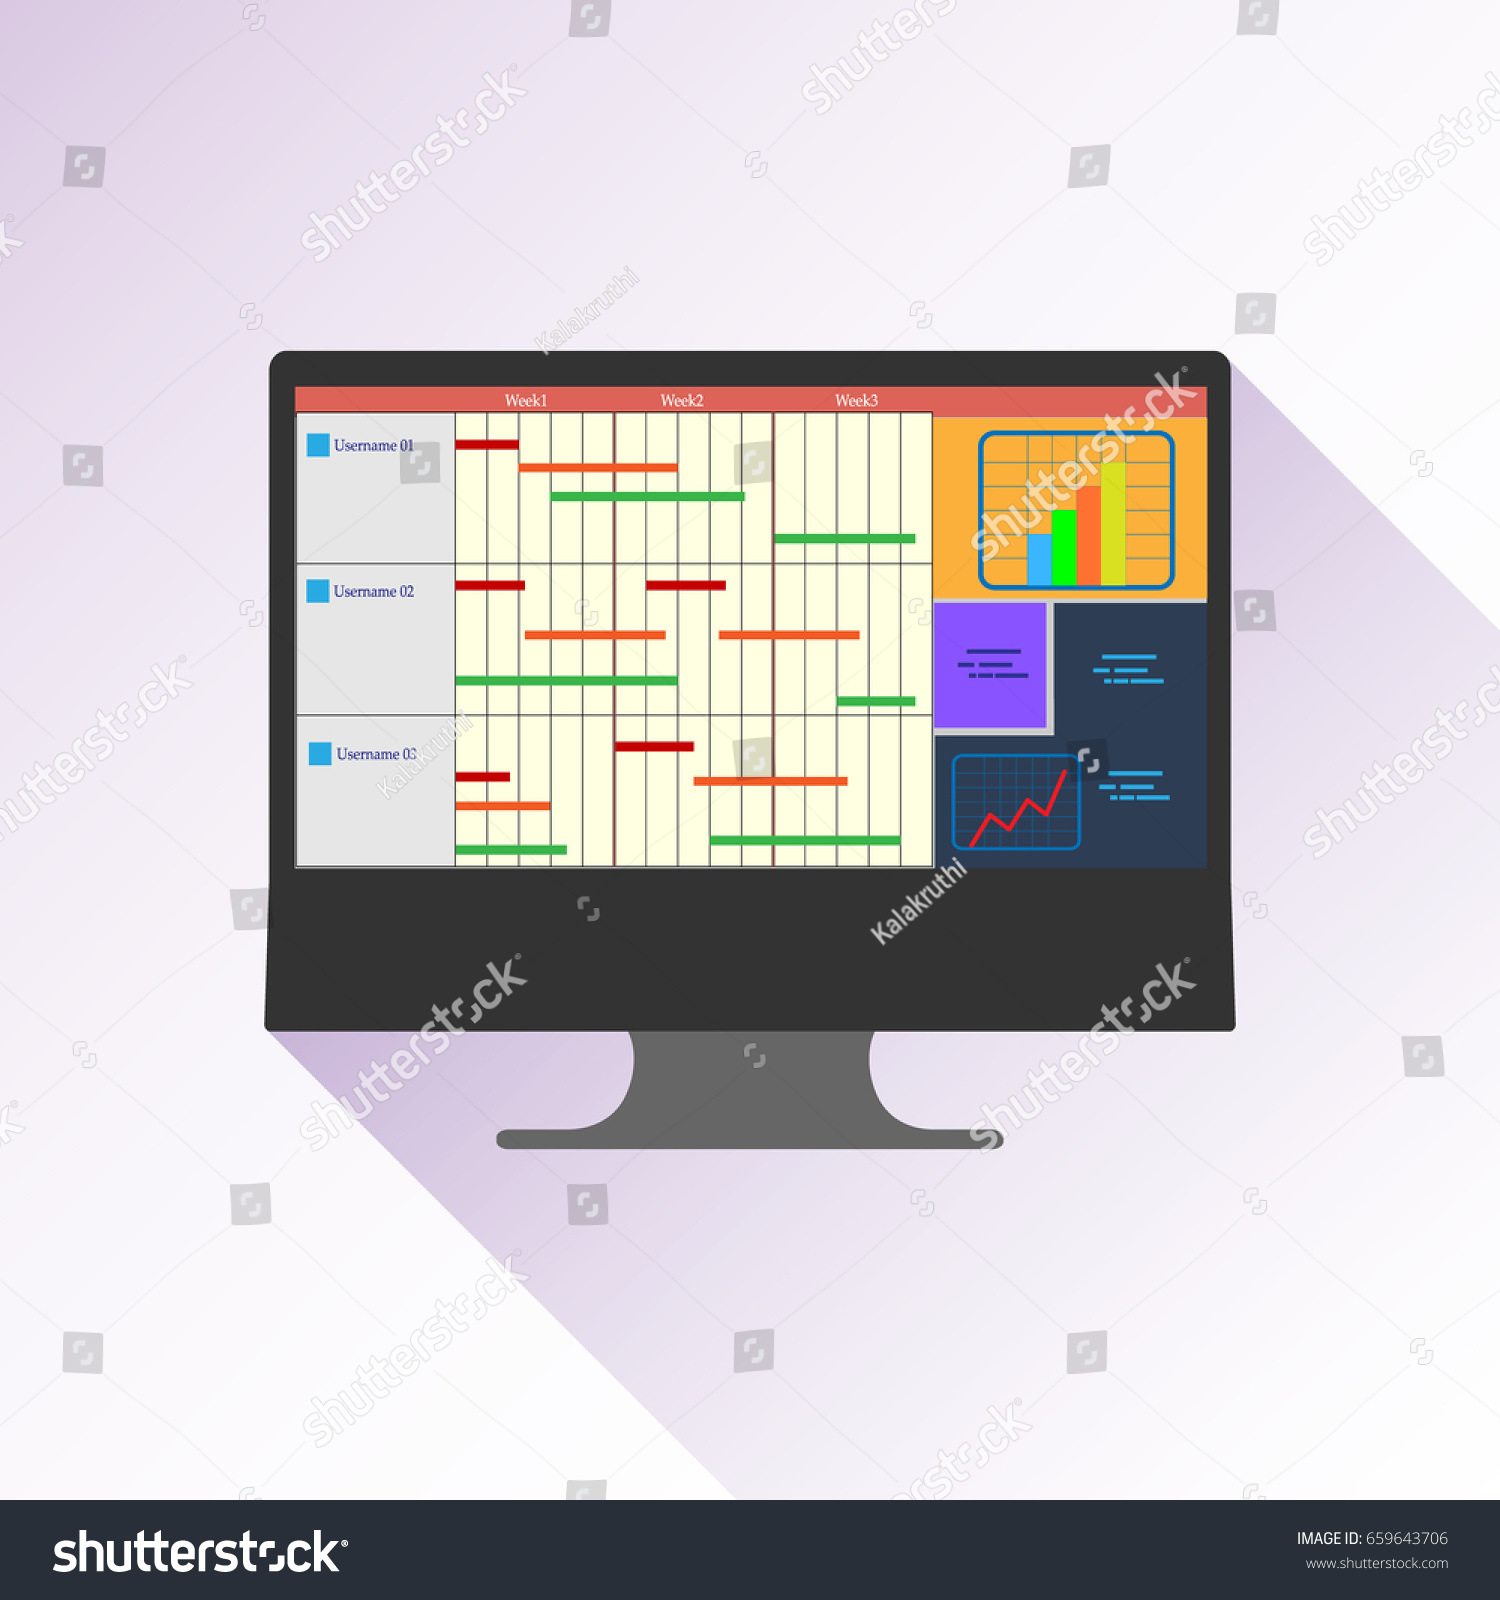 Illustration gantt chart used project management stock vector illustration of a gantt chart used in project management one of the most popular nvjuhfo Images